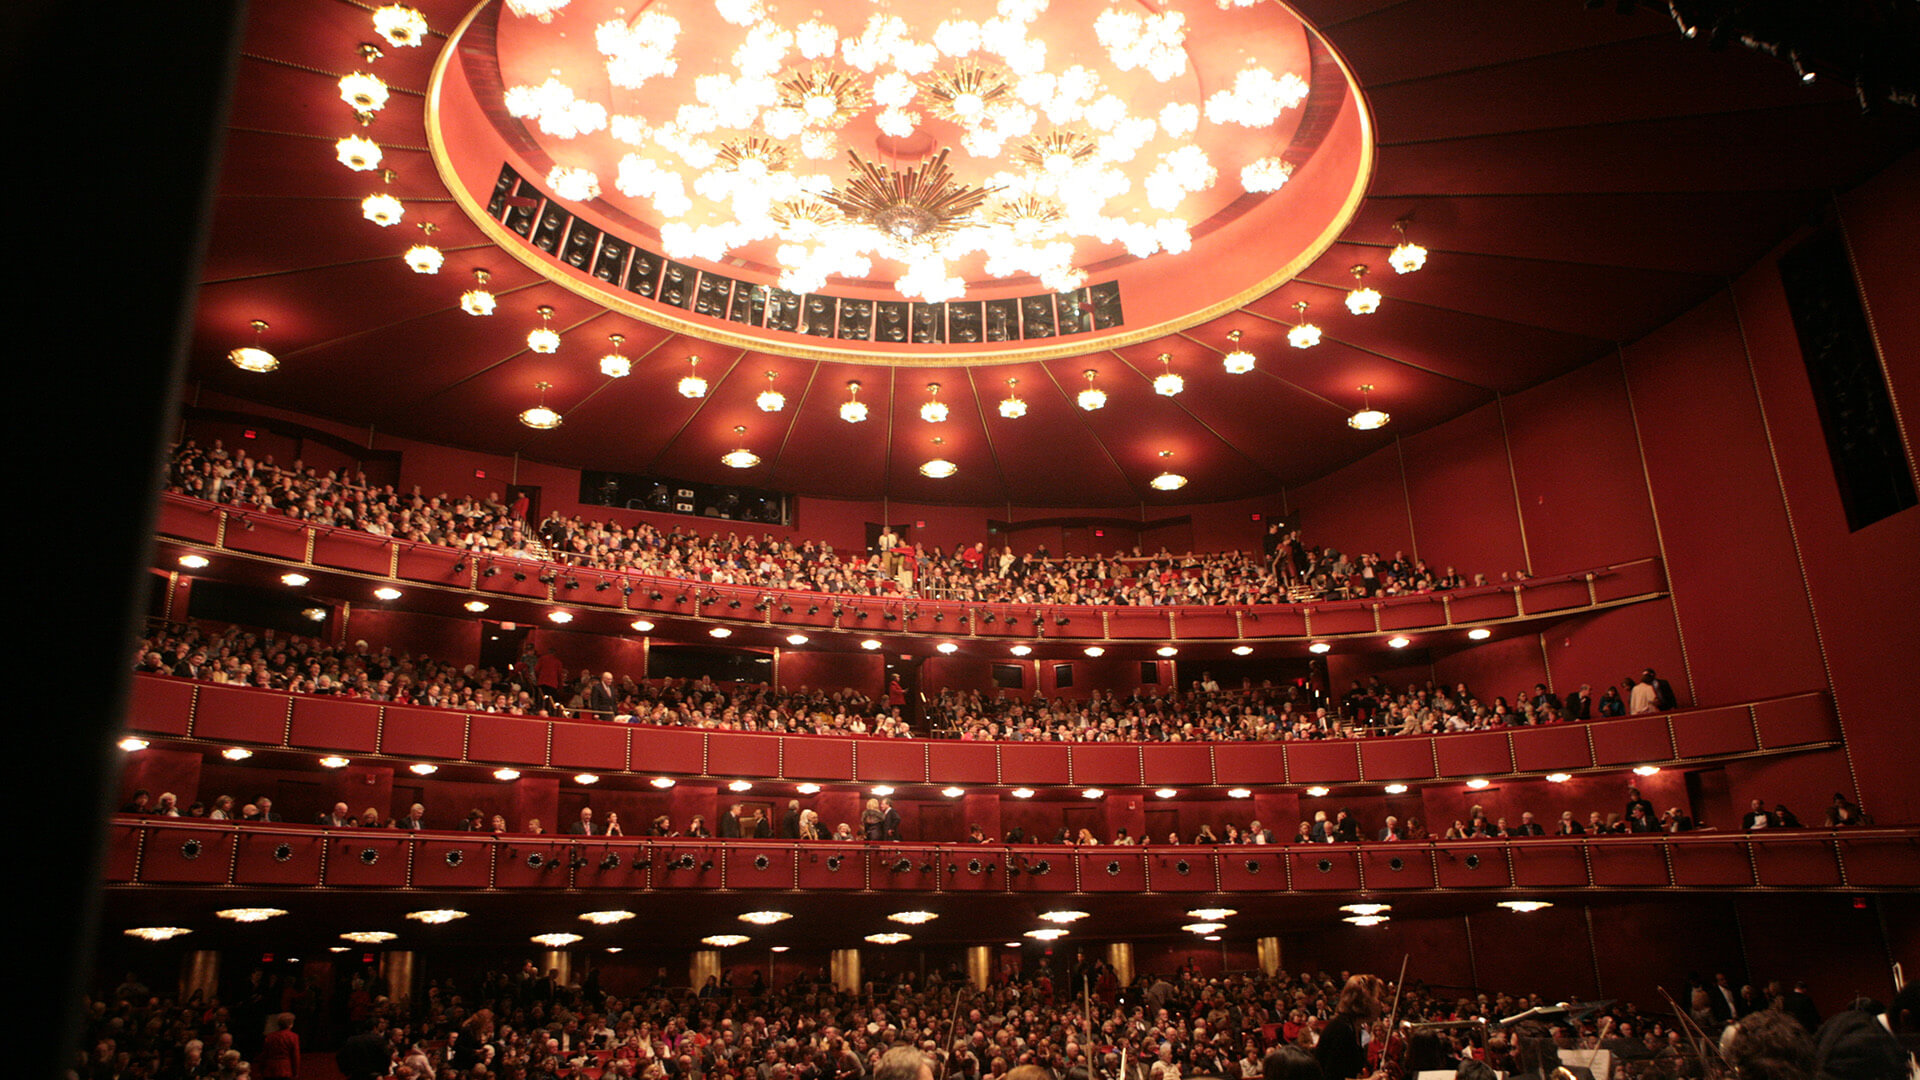 Petite Messe Solennelle, Kennedy Center Opera House Washington